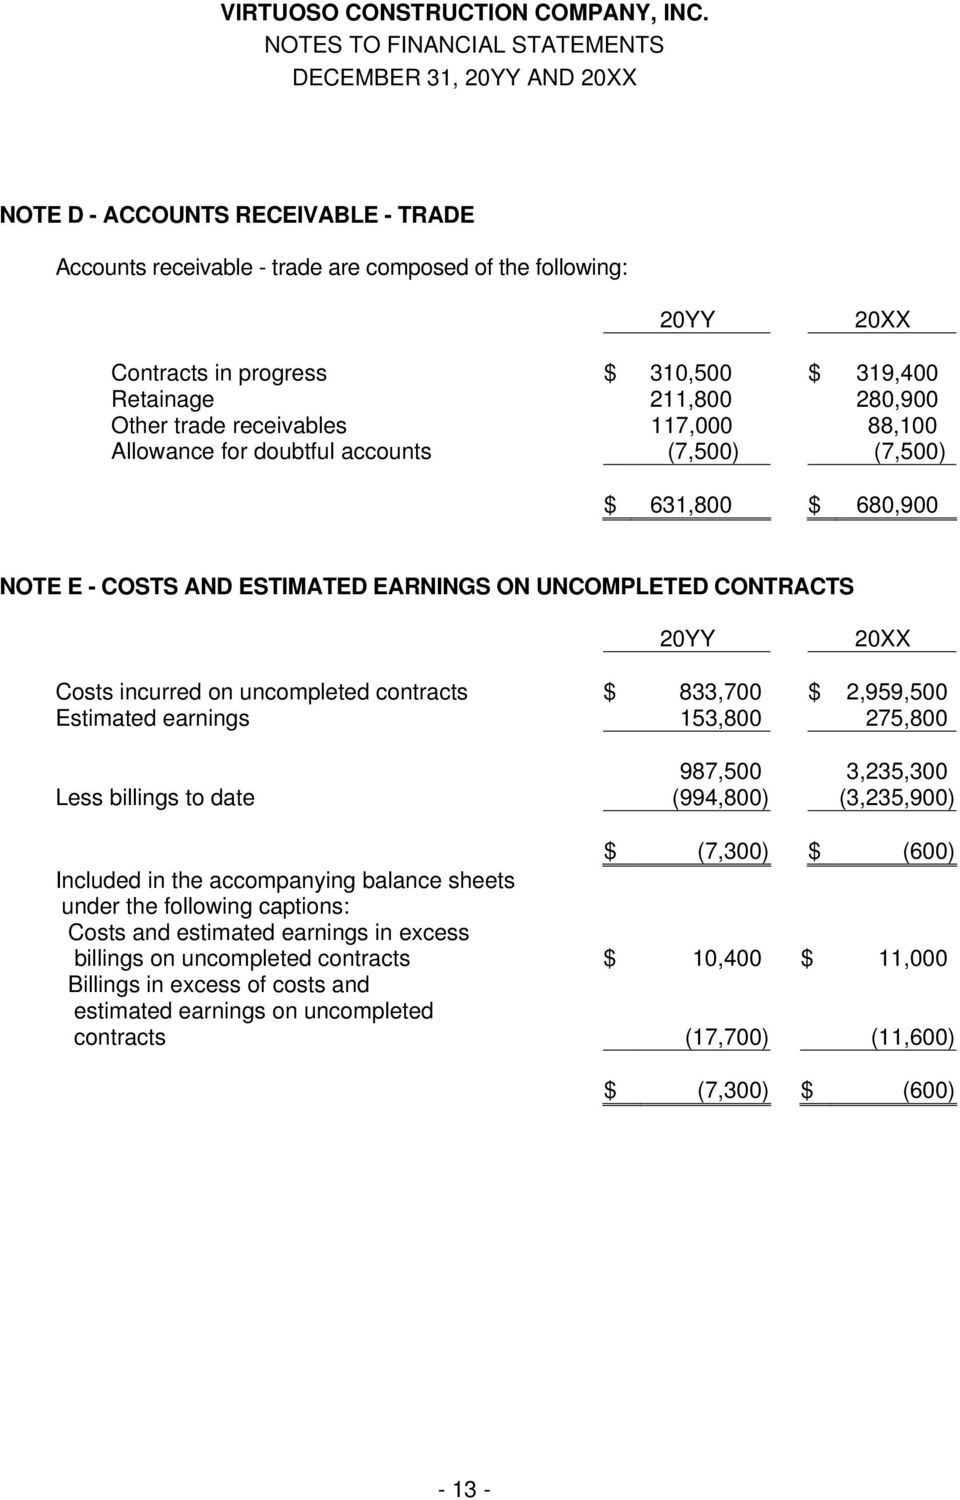 incurred on uncompleted contracts $ 833,700 $ 2,959,500 Estimated earnings 153,800 275,800 987,500 3,235,300 Less billings to date (994,800) (3,235,900) $ (7,300) $ (600) Included in the accompanying